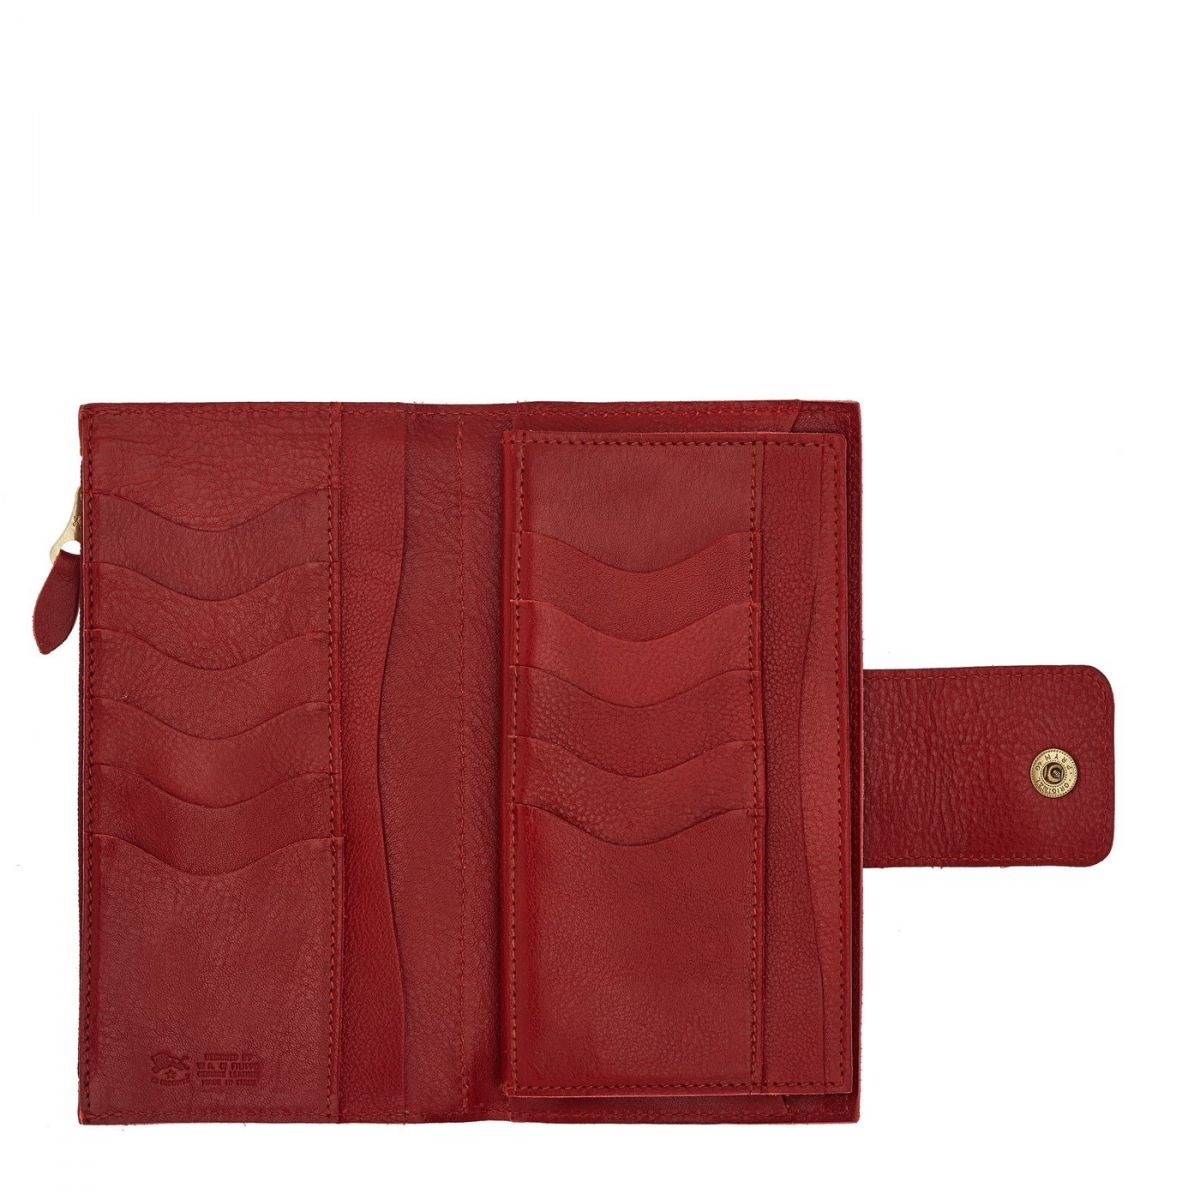 Women's Continental Wallet  in Cowhide Double Leather SCW007 color Red | Details